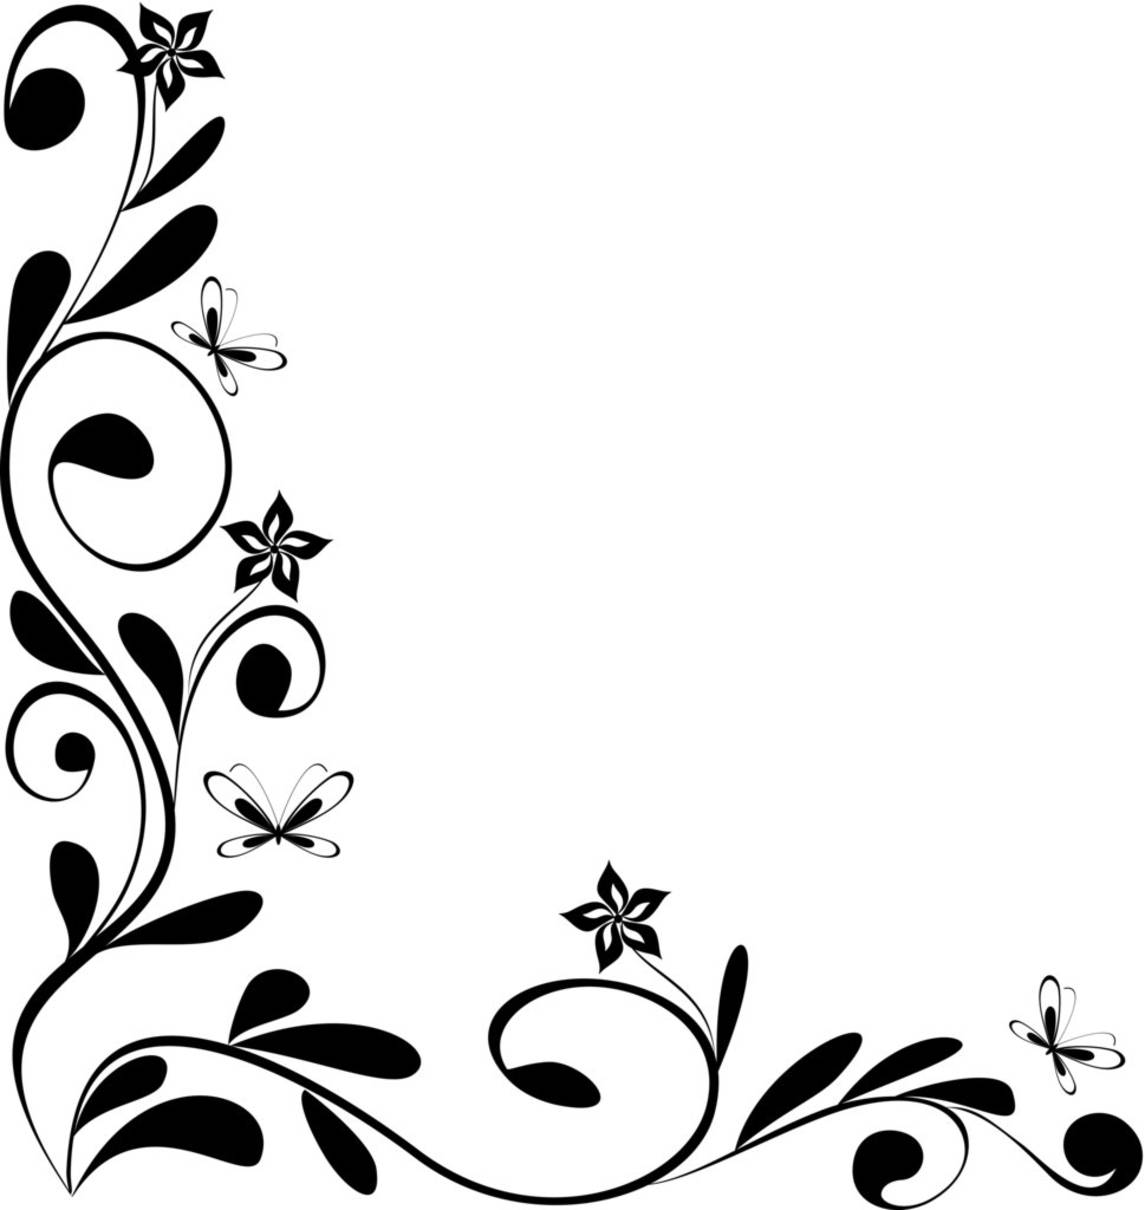 Simple Corner Page Borders - ClipArt Best